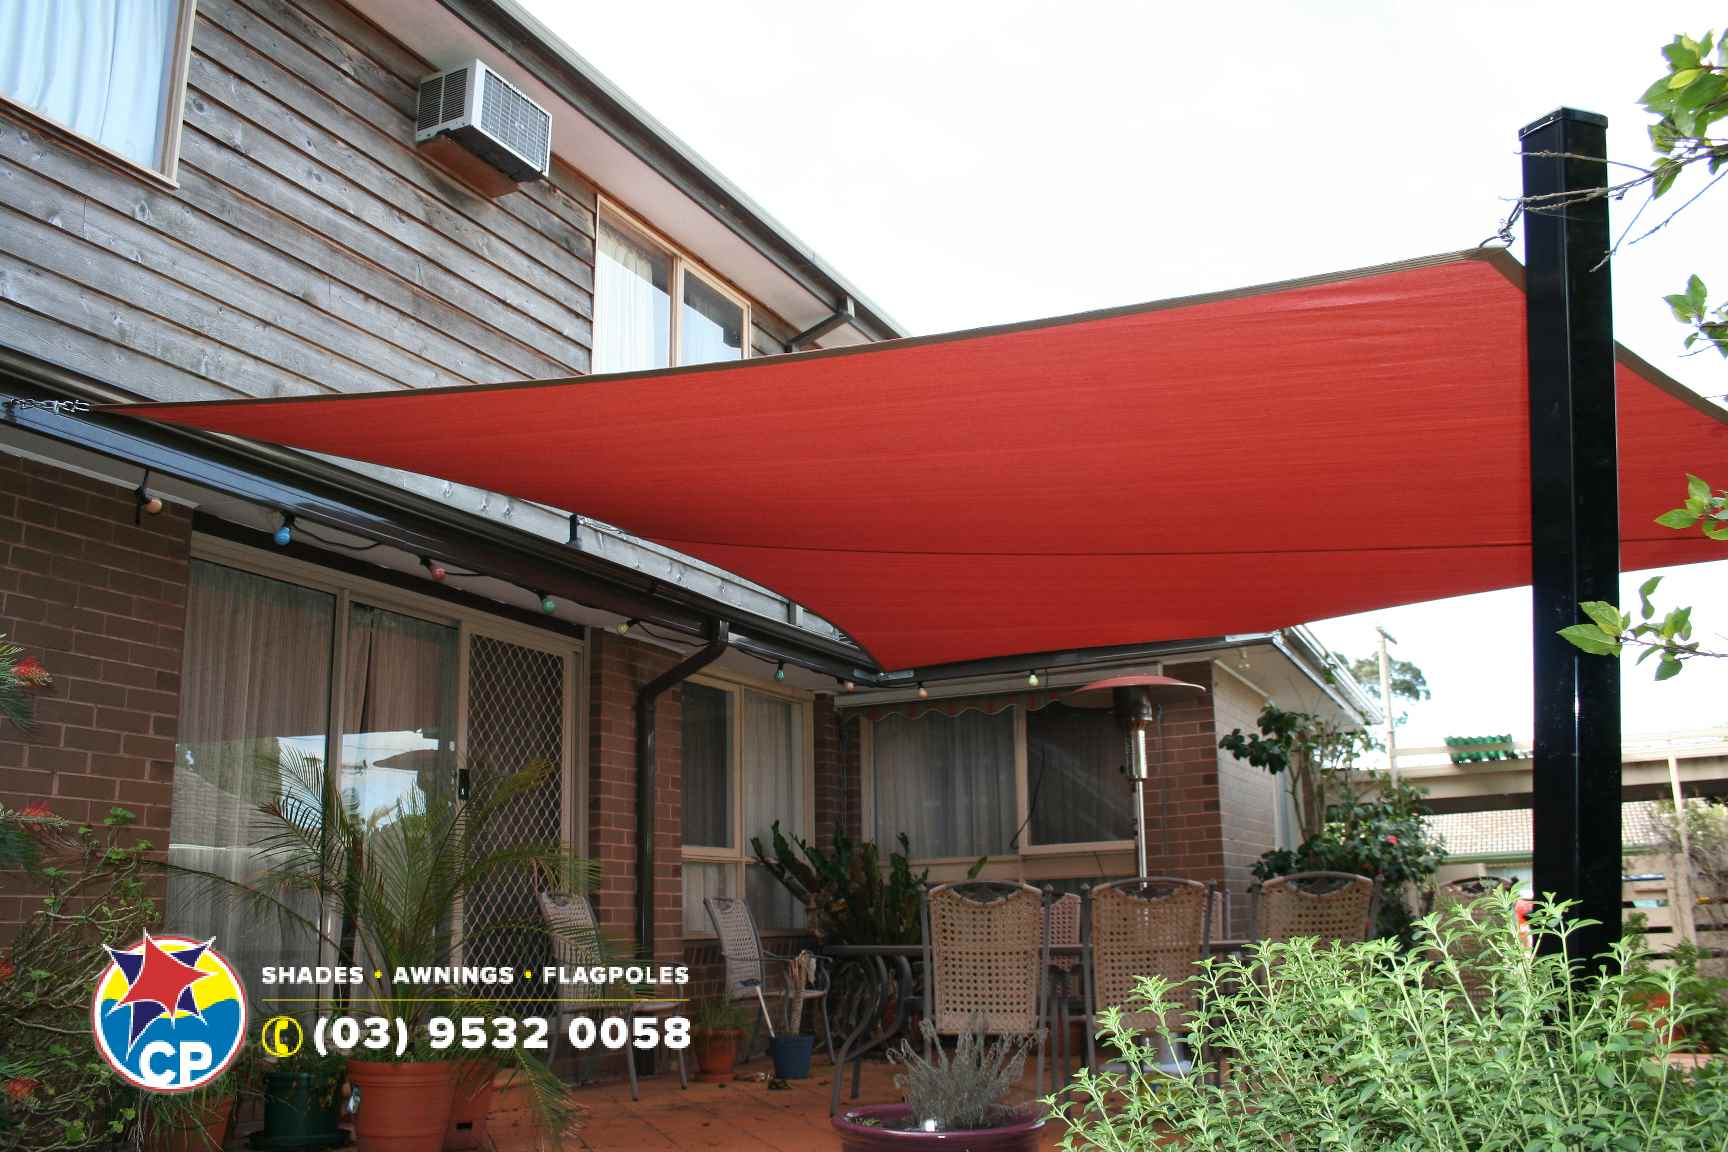 Shade patio large red.jpg